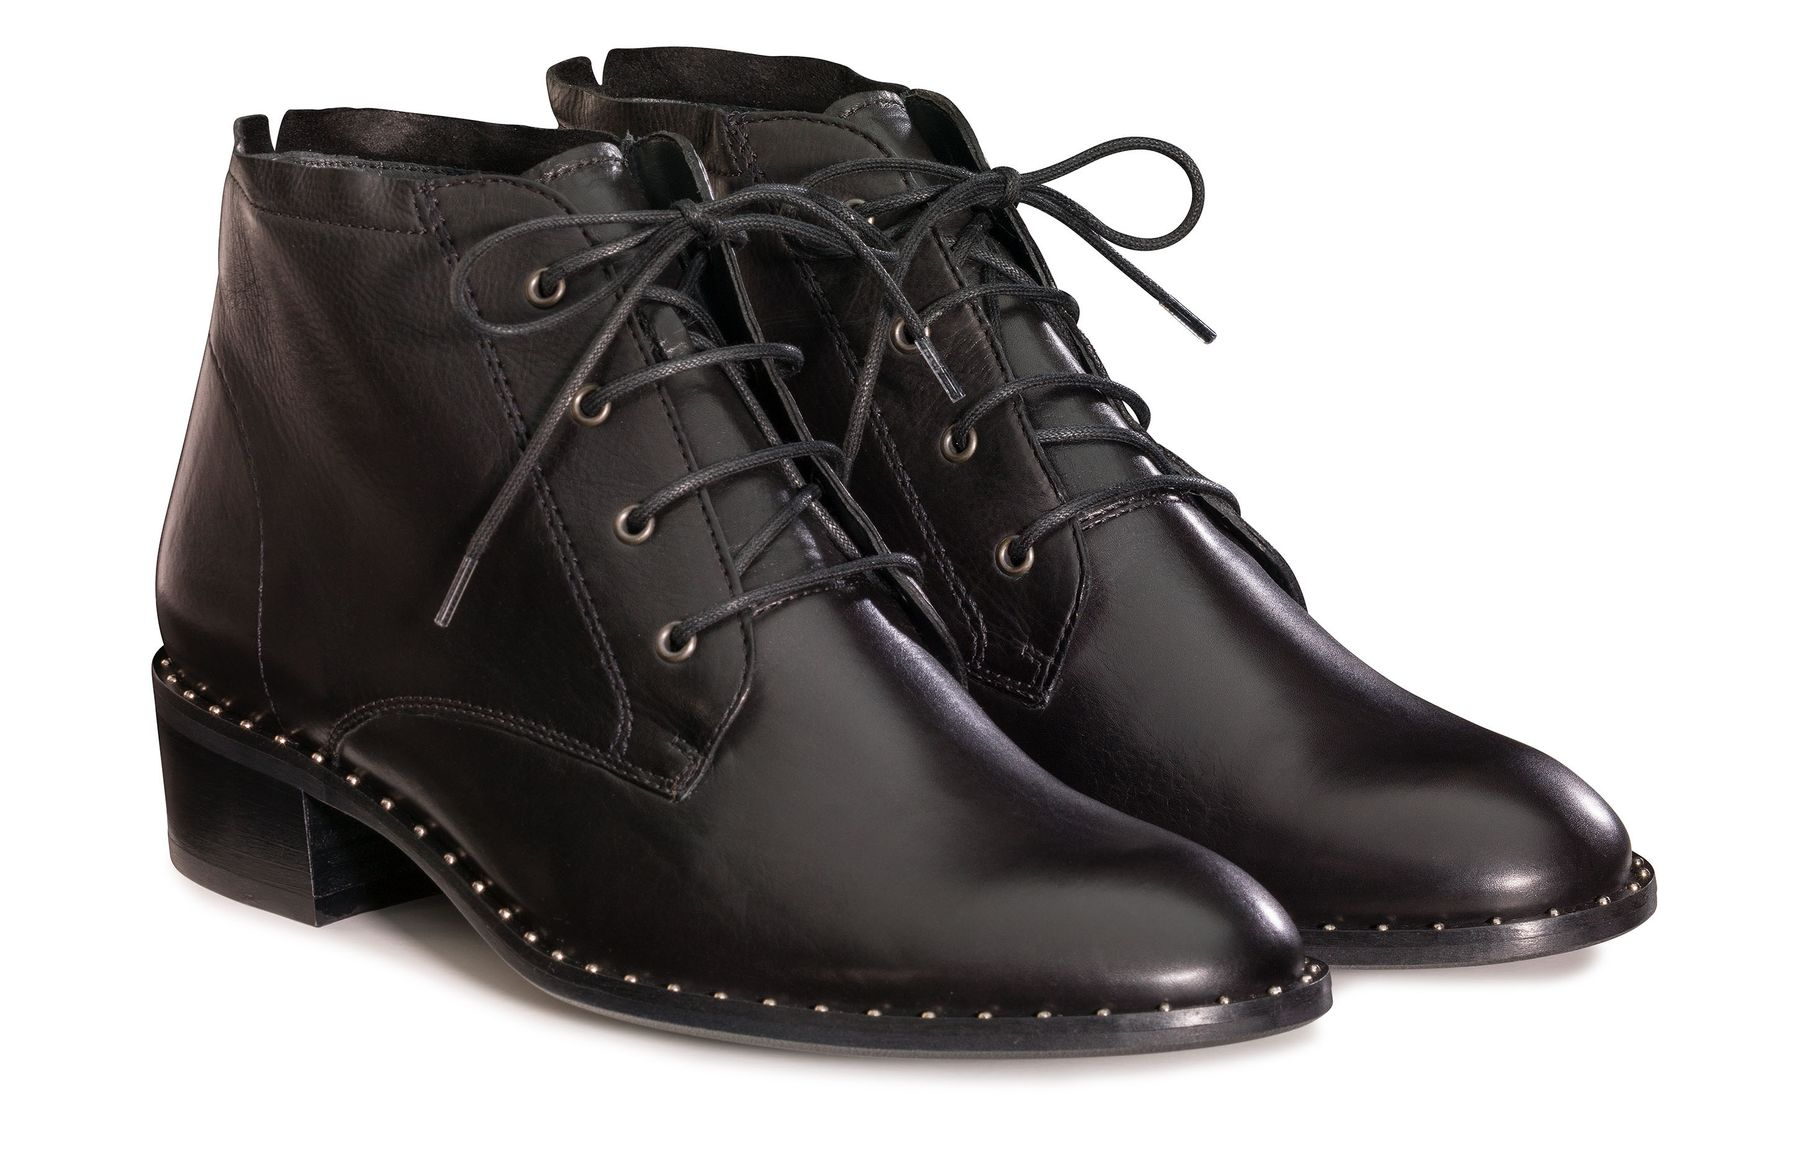 8486c3fe5f3 Grand Lace-up Boots in Black - Paul Green